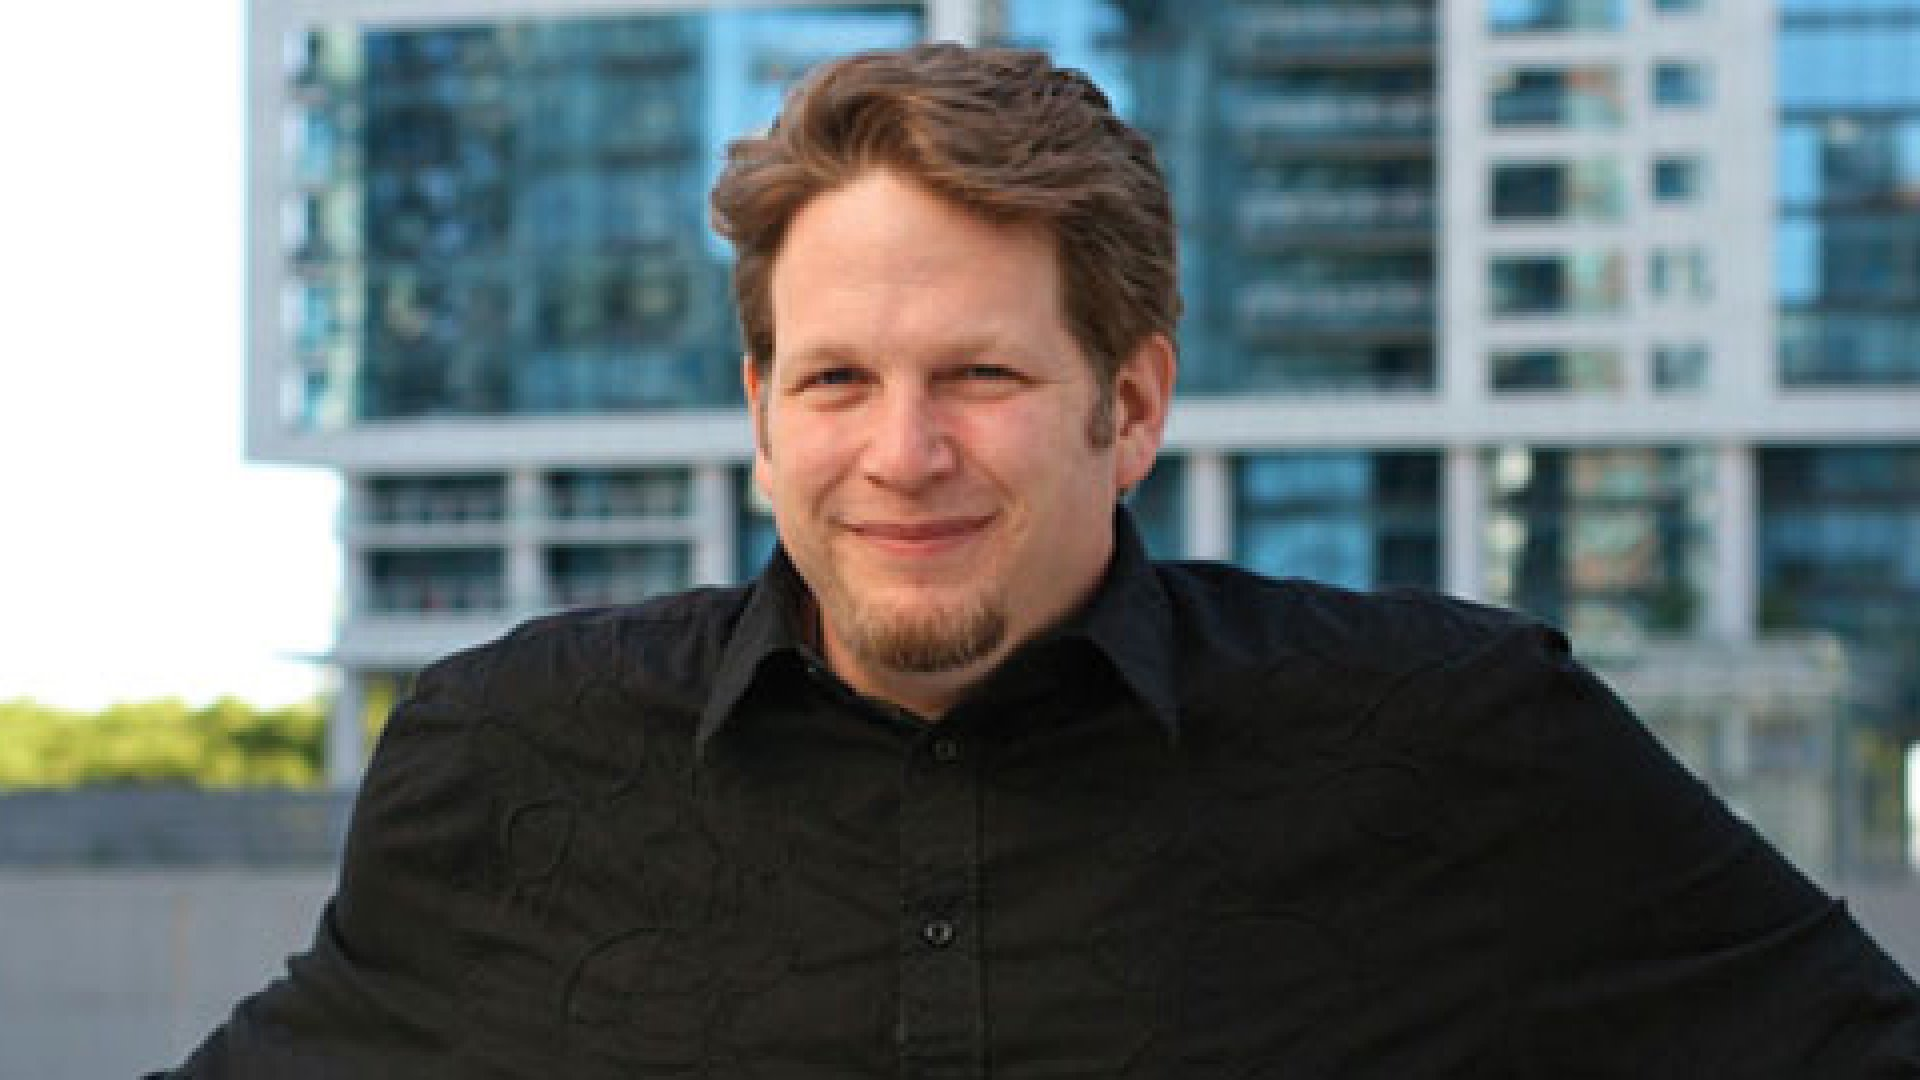 Chris Brogan is the author of Trust Agents and founder of New Marketing Labs